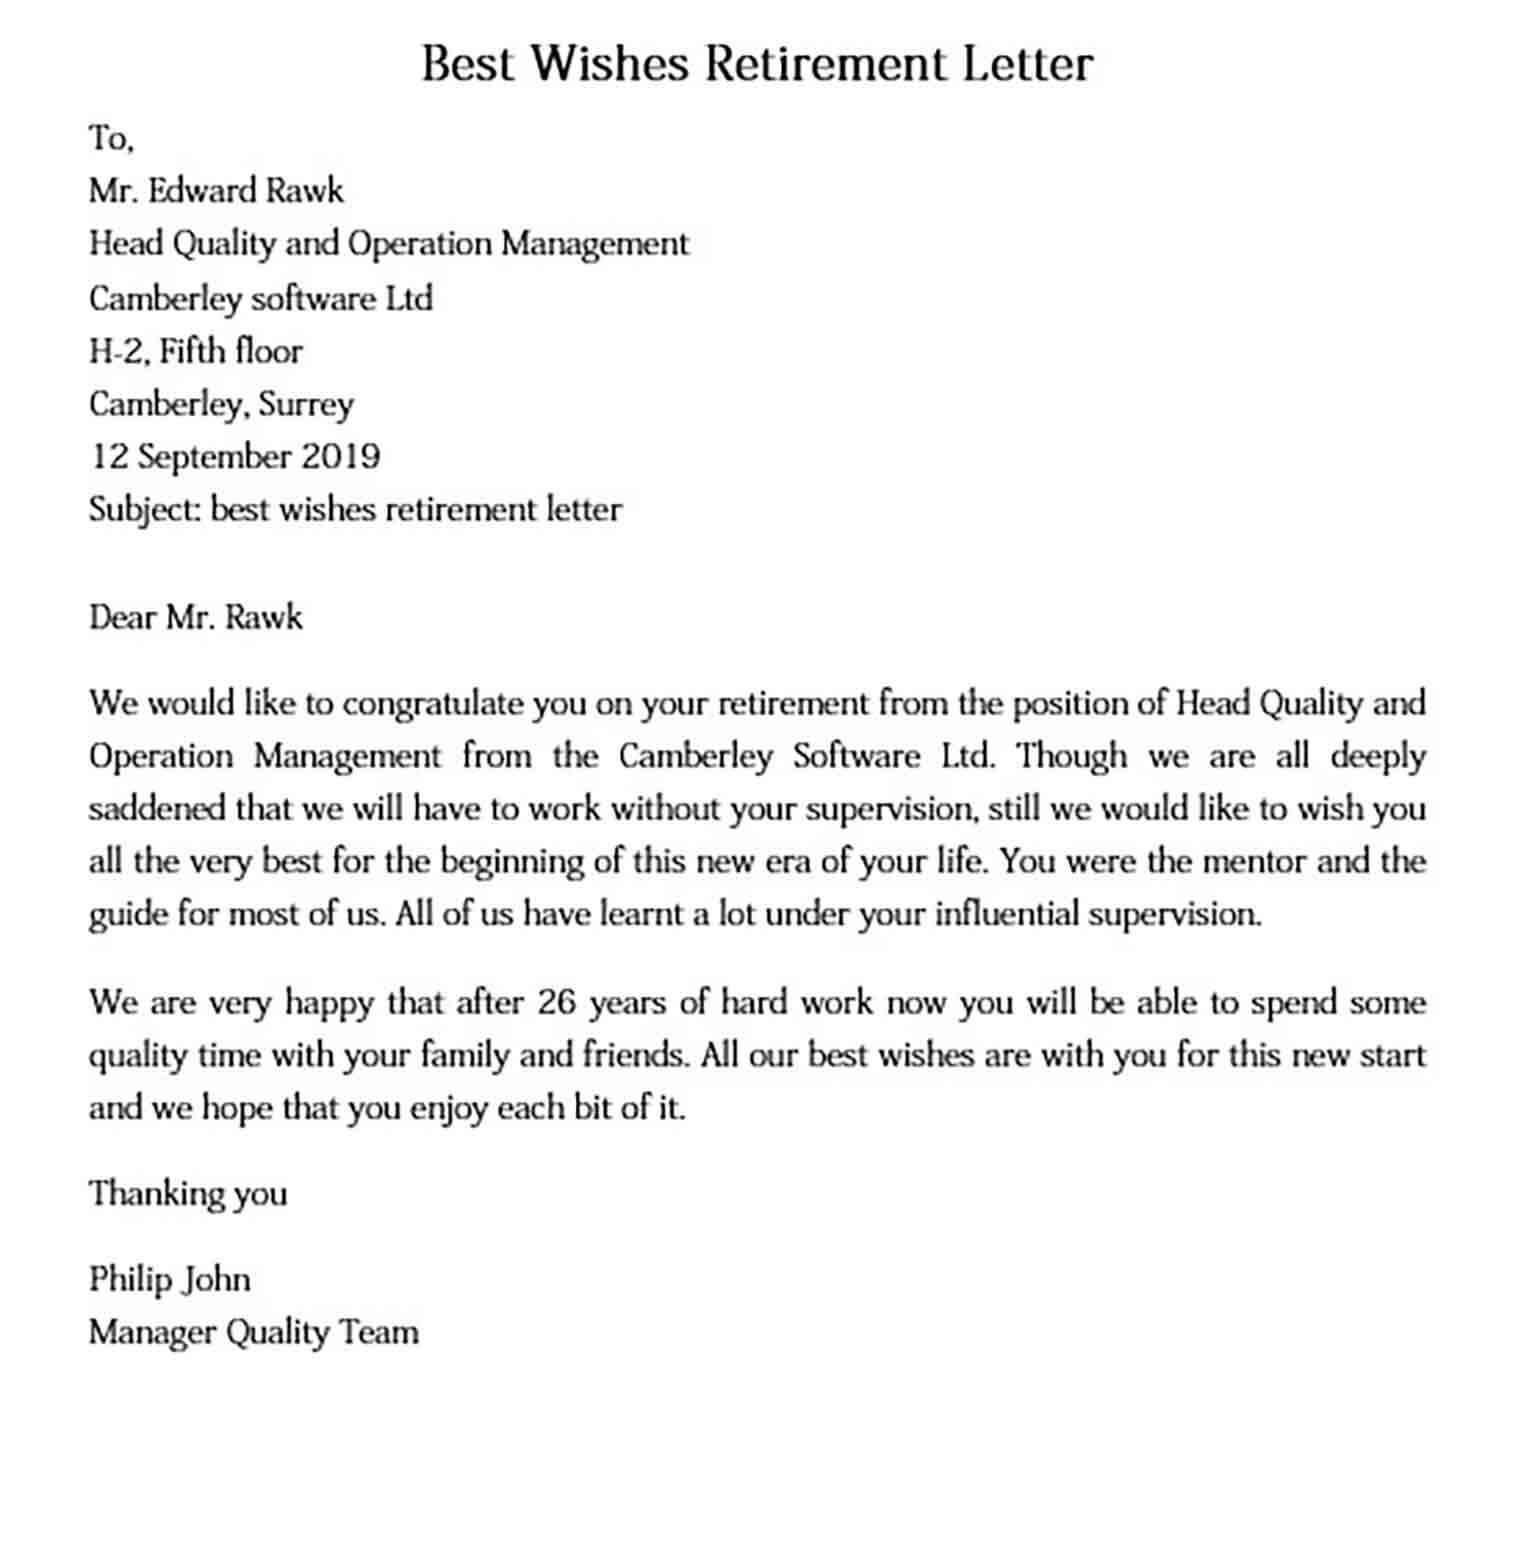 Retirement Letter To Employee Thank You from moussyusa.com